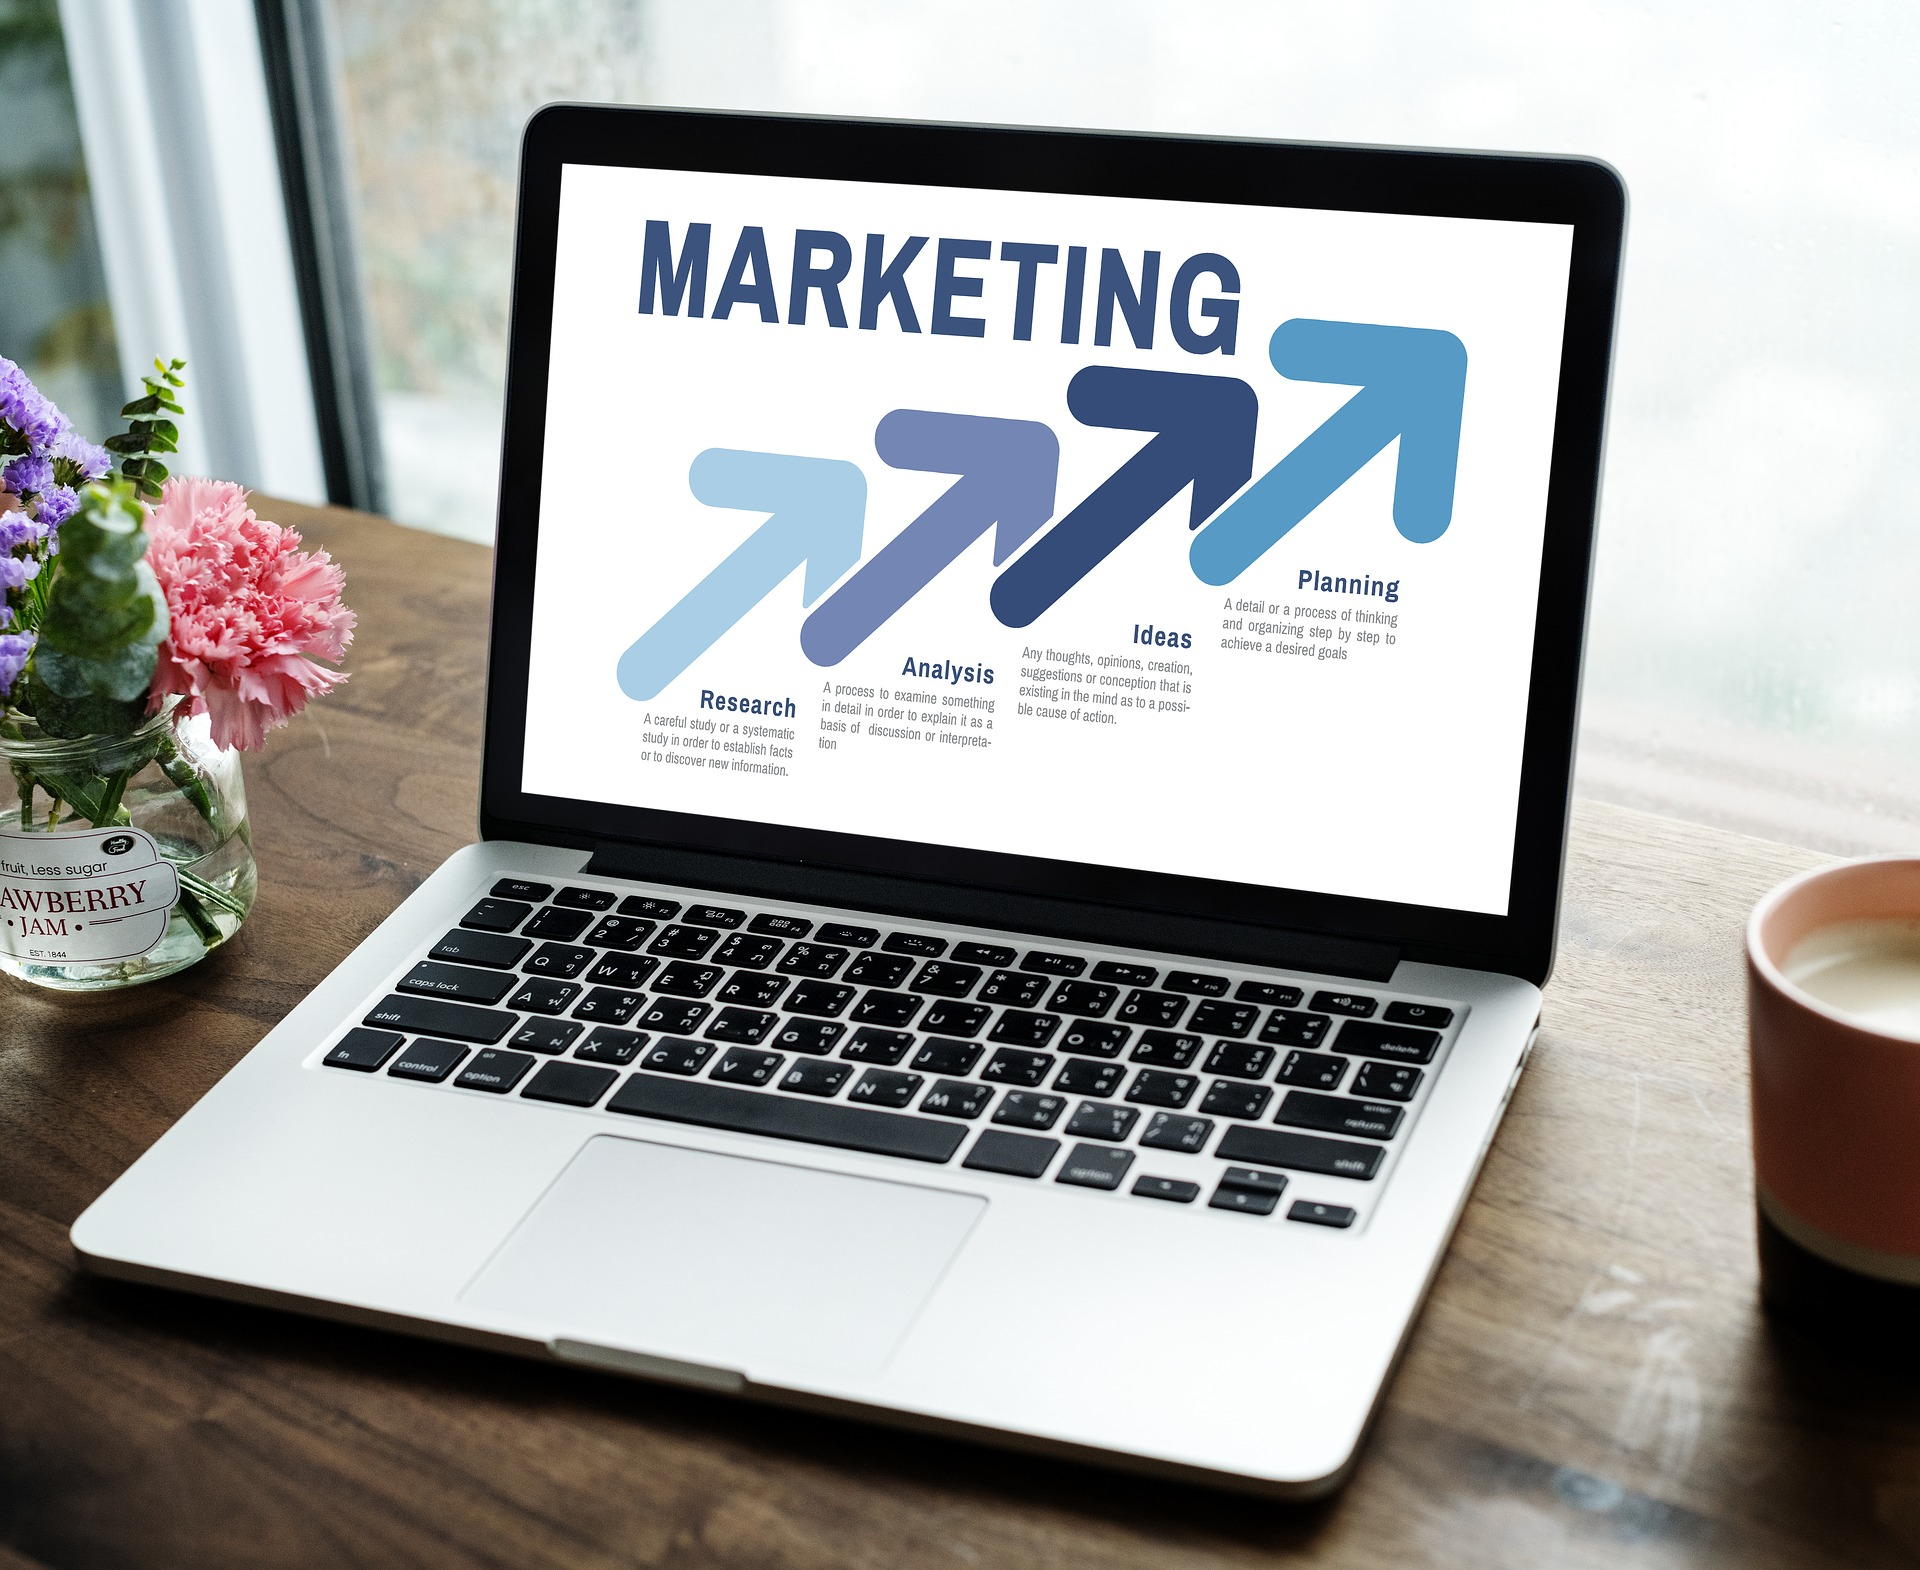 8 Digital Marketing Tips to Expand Your Brand Presence and Reach